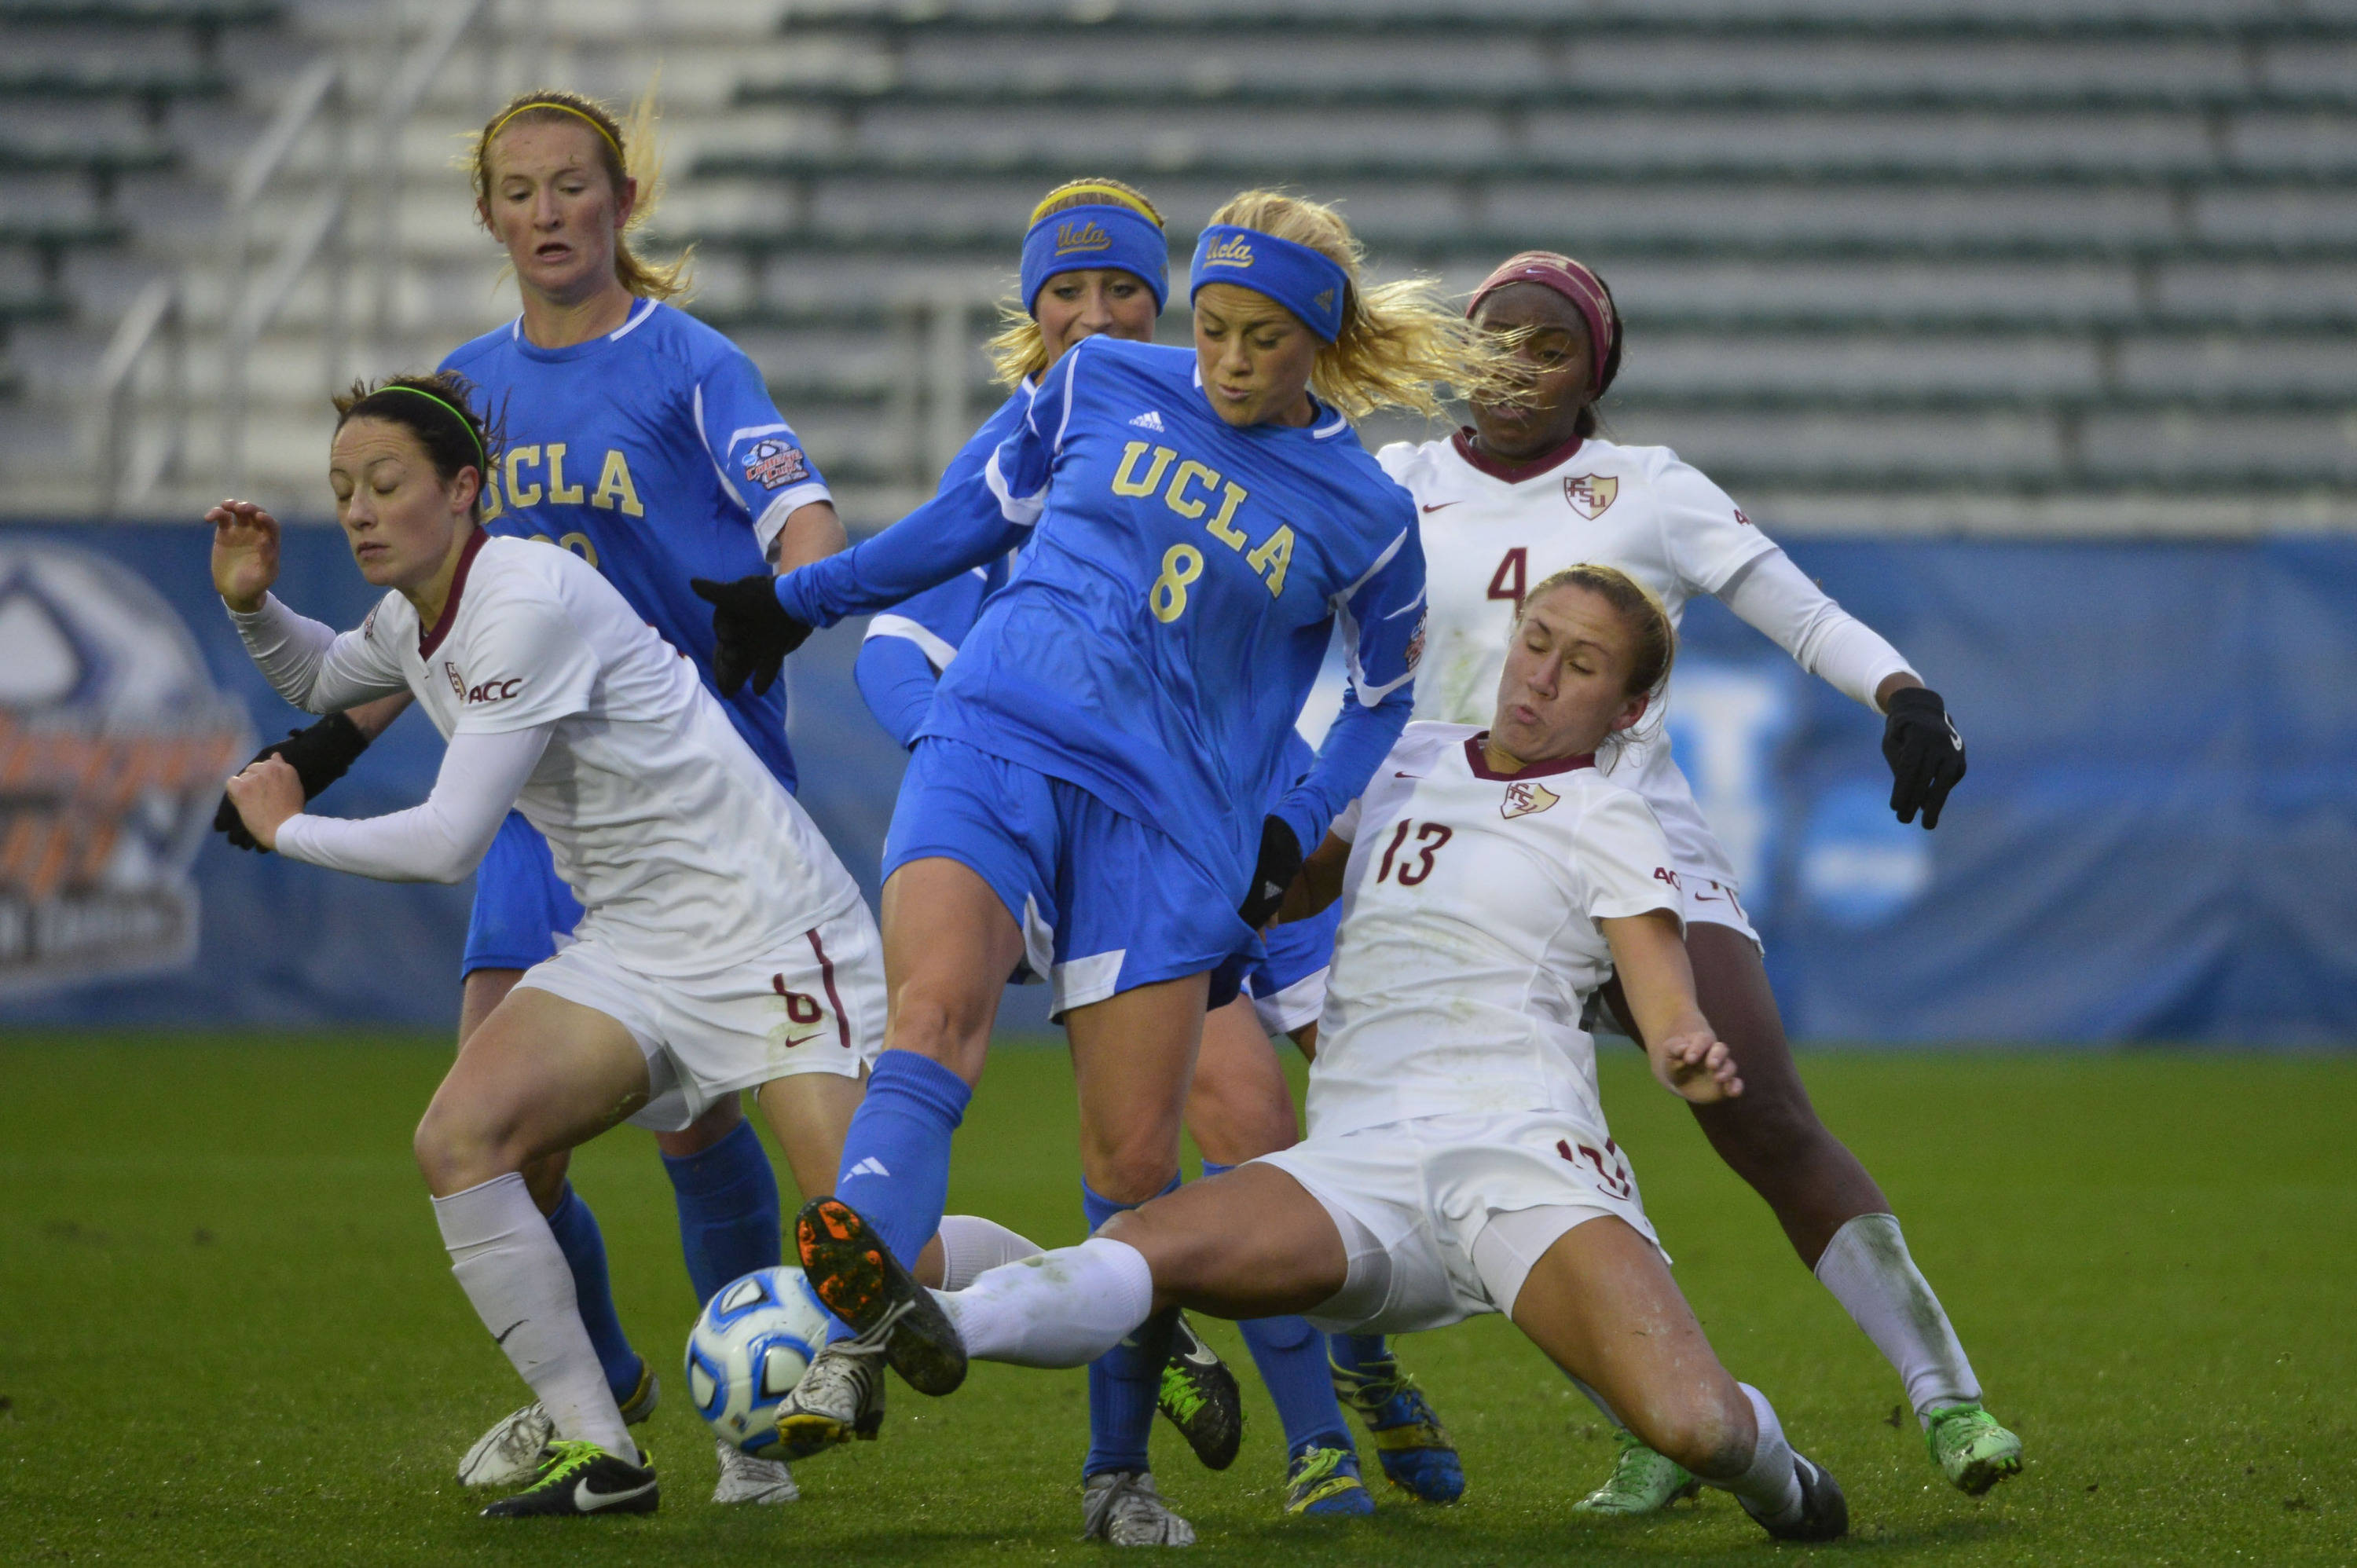 UCLA Bruins midfield/forward Sam Mewis (22) and defender Megan Oyster (21) and defender Abby Dahlkemper (8) and Florida State Seminoles defender Megan Campbell (6) and midfielder/forward Jamia Fields (4) and defender/midfielder Kristin Grubka (13) fight for the ball. Mandatory Credit: Bob Donnan-USA TODAY Sports